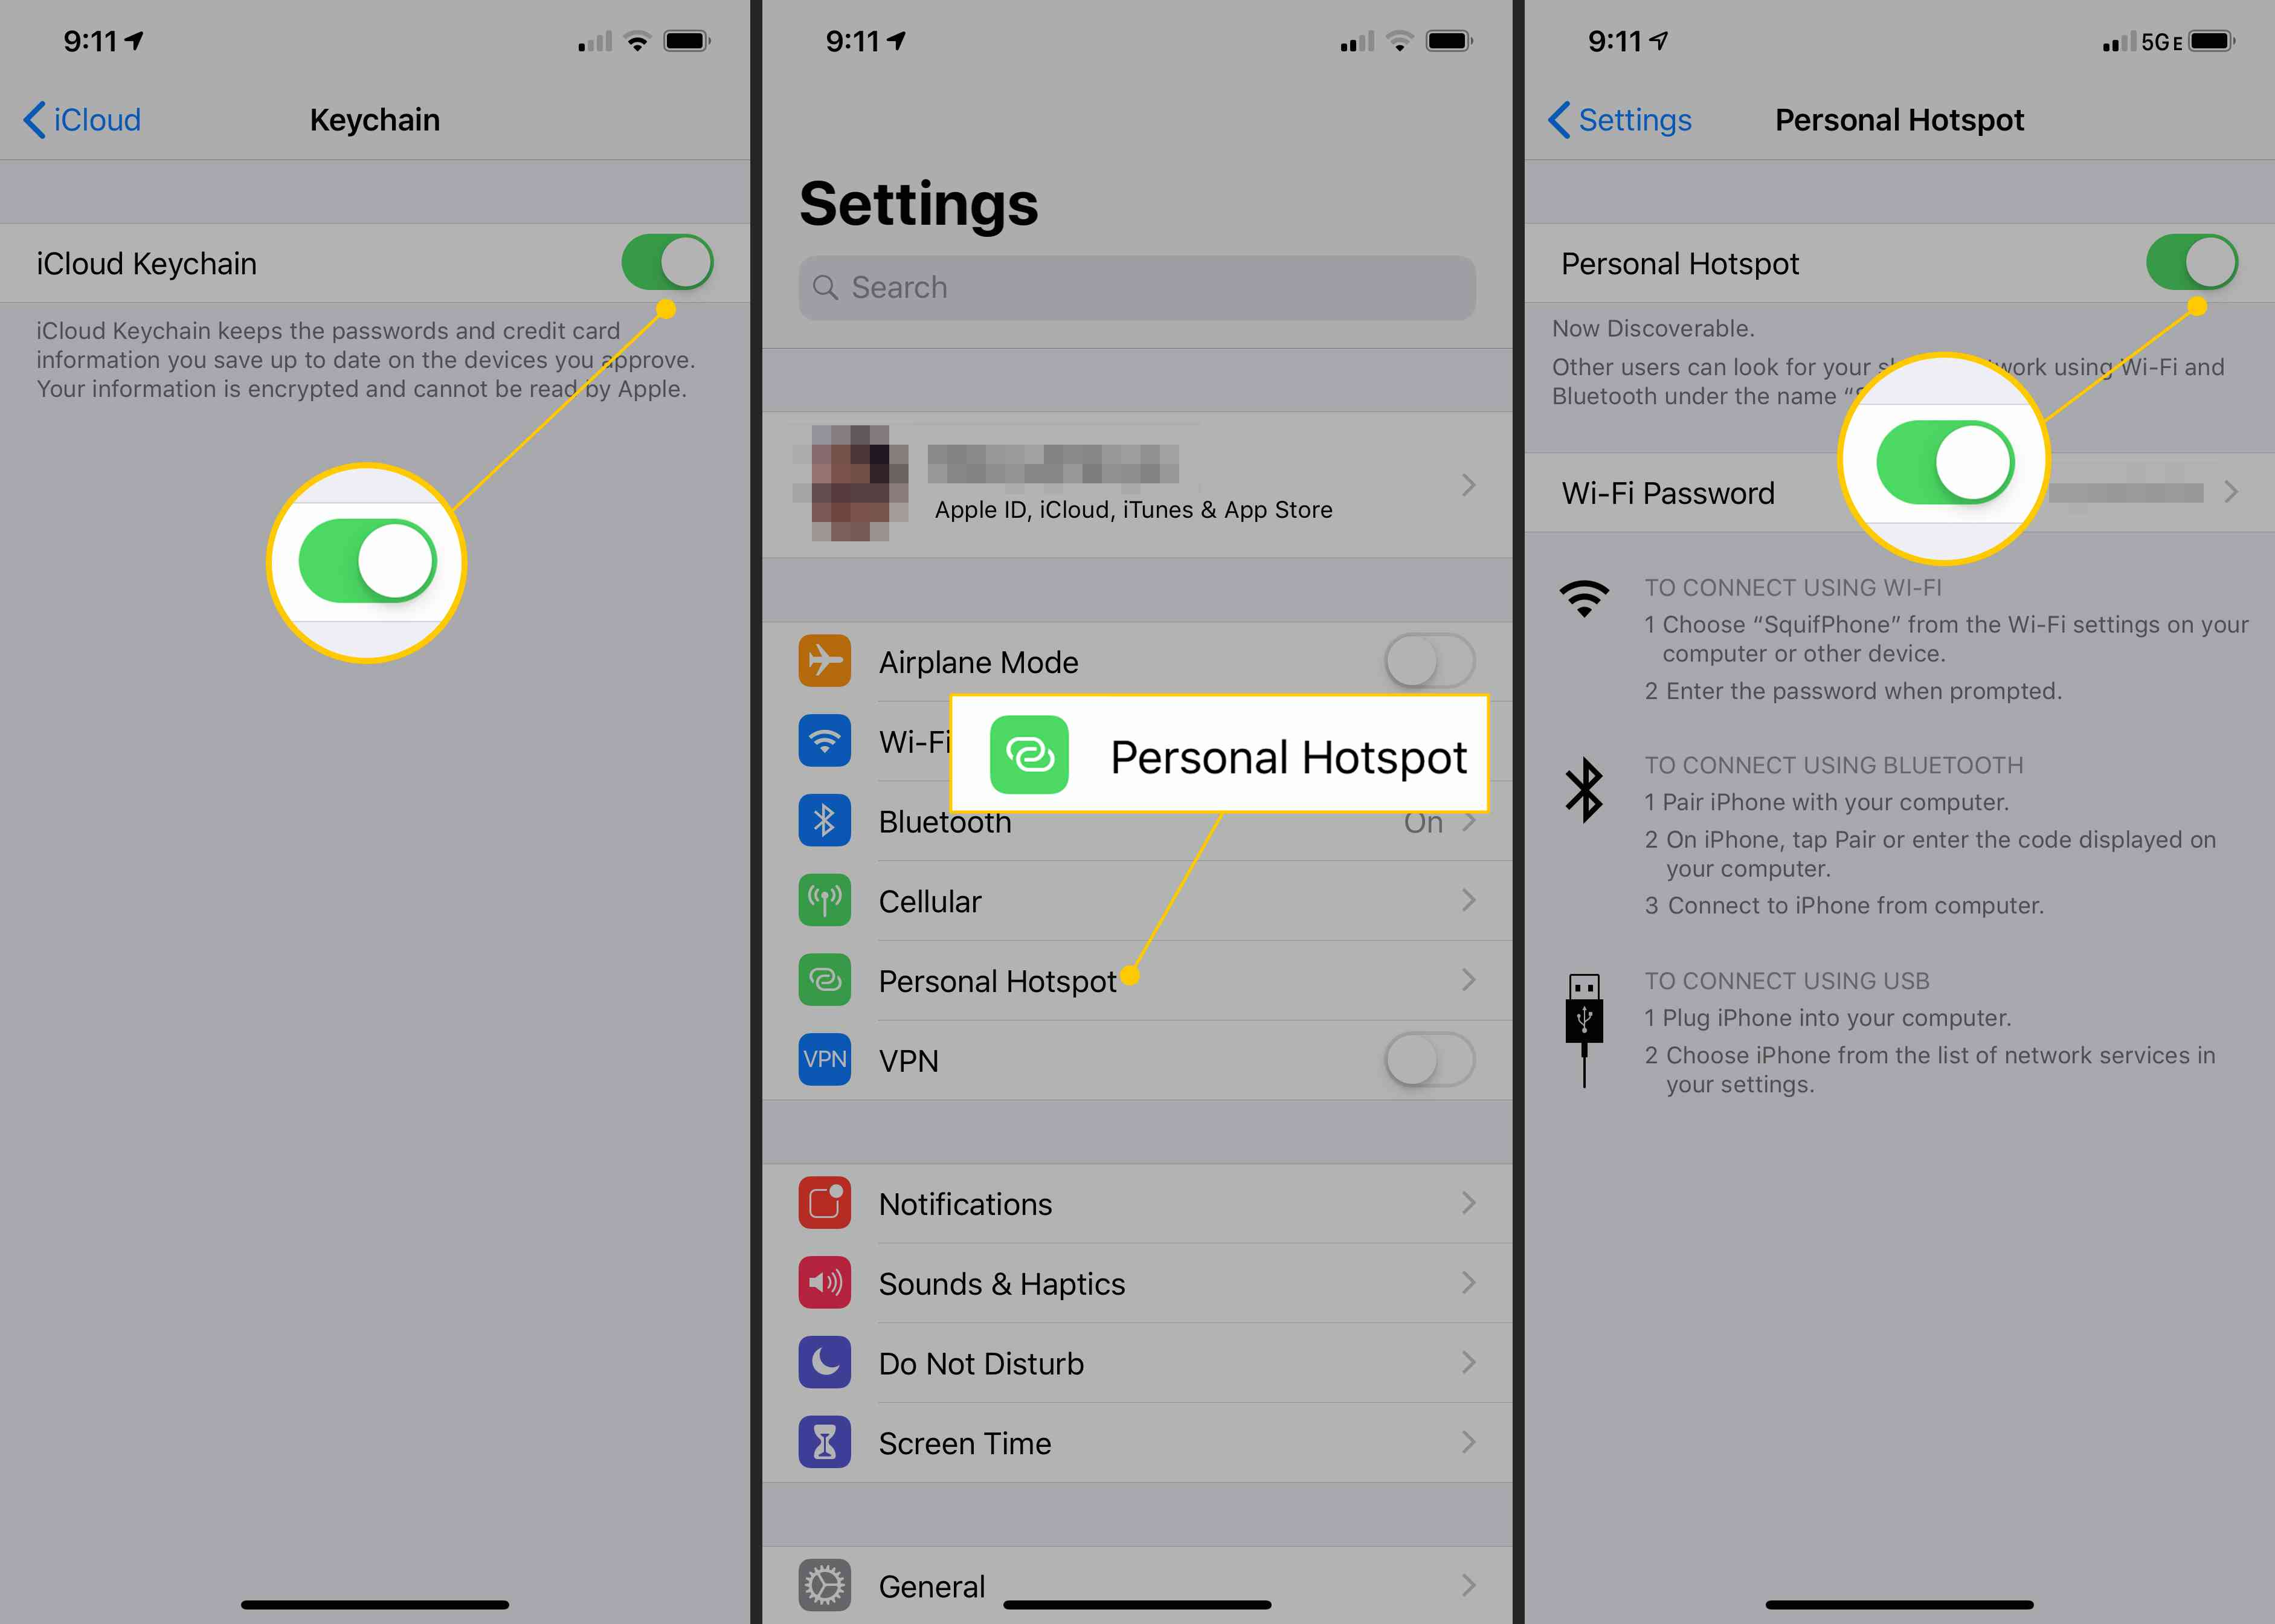 iCloud Keychain, Personal Hotspot, toggle ON in iOS Settings